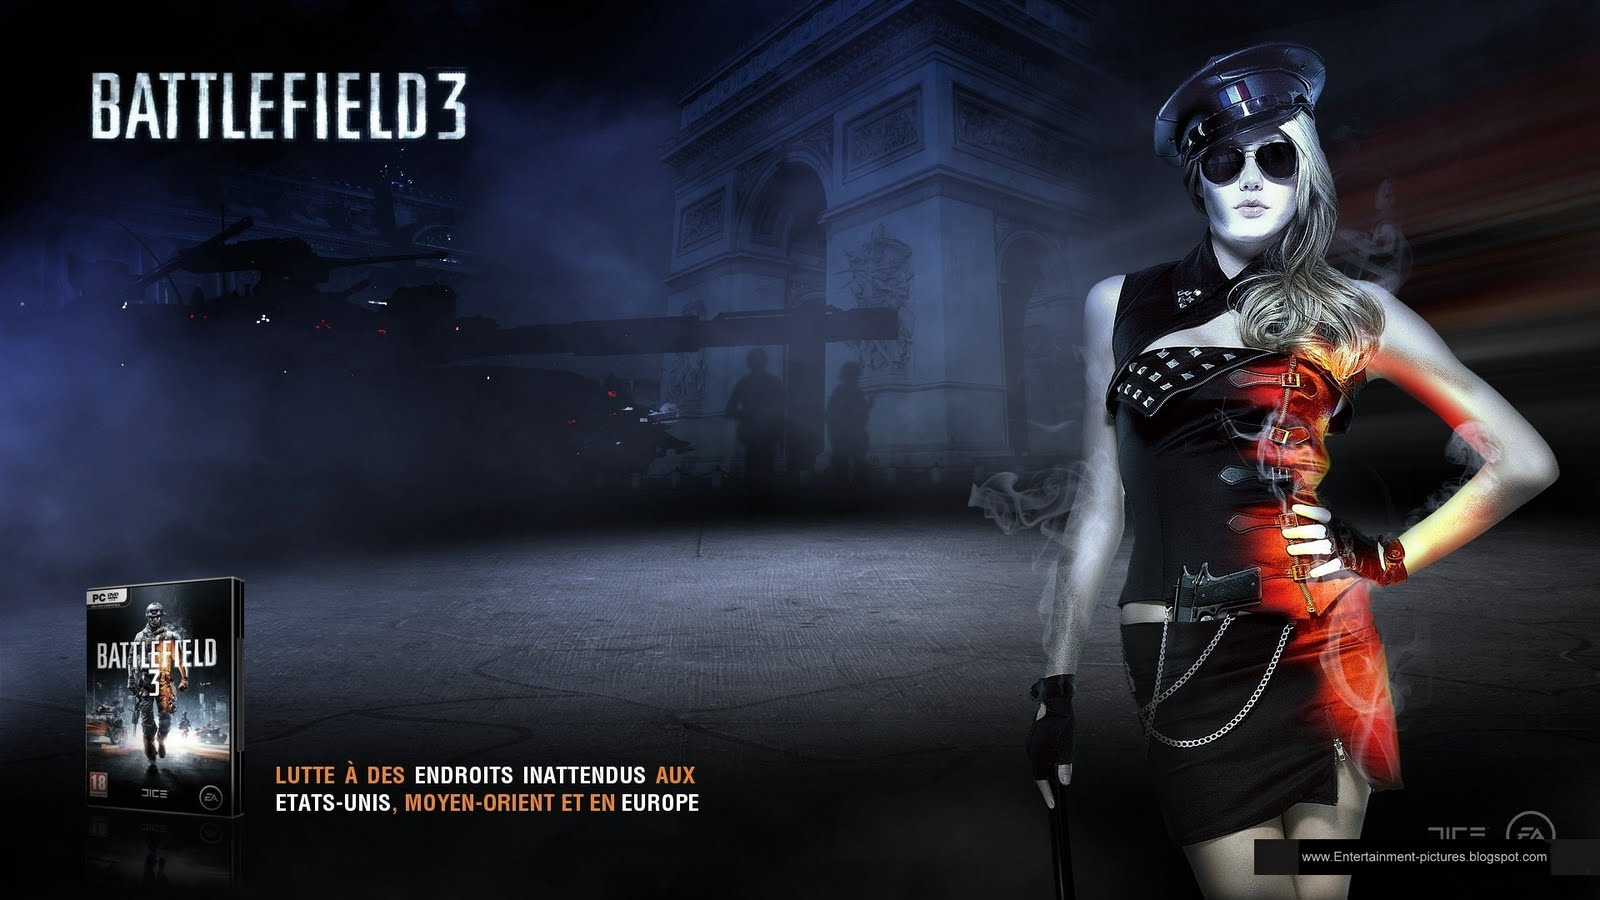 battlefield 3 french commander wallpapers - Battlefield 3 French Commander Wallpapers HD Wallpapers